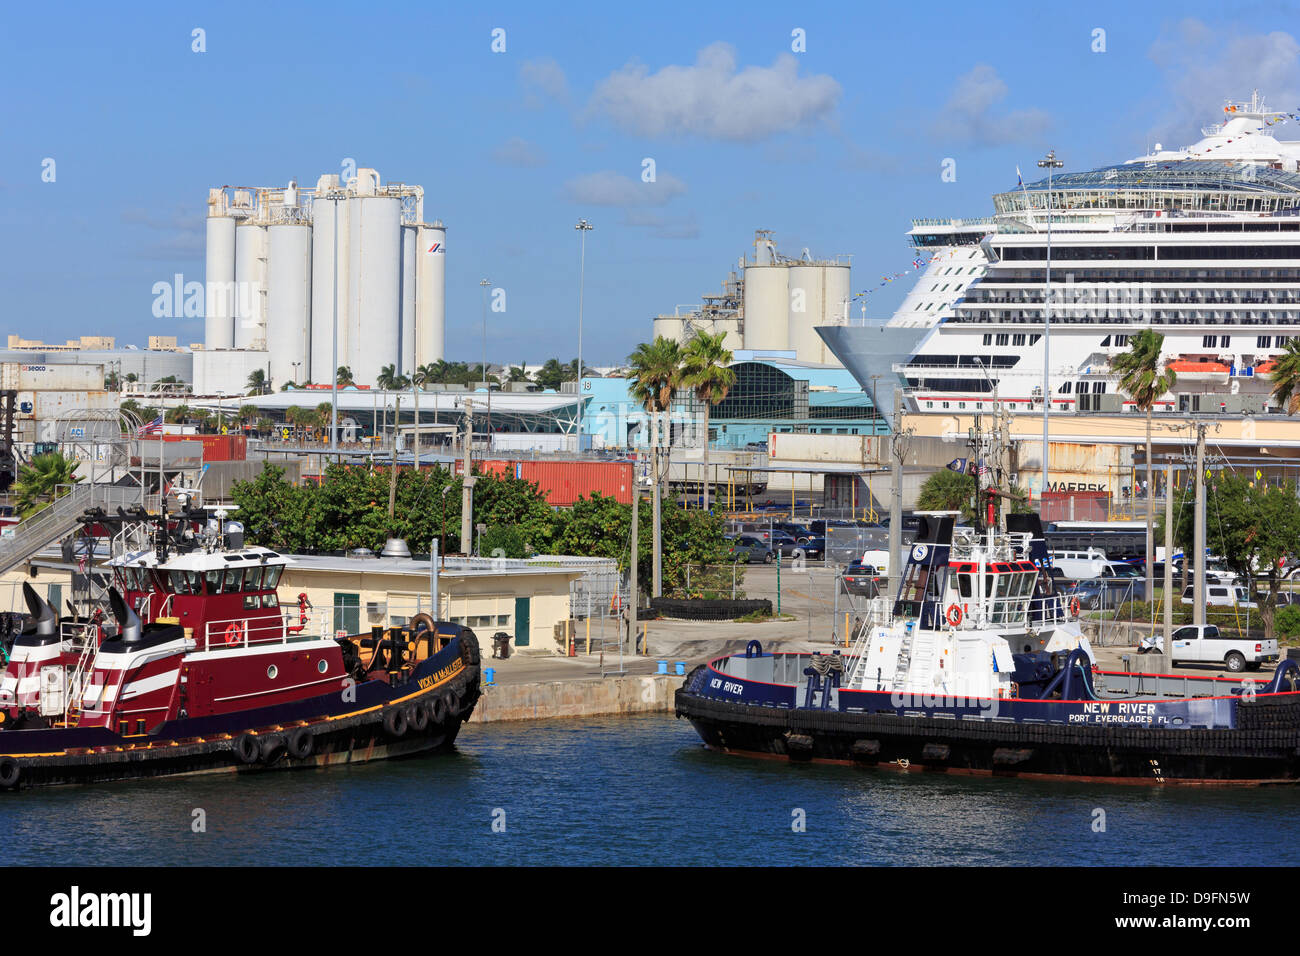 Tugboats and cruise ships in Port Everglades, Fort Lauderdale, Florida, USA Stock Photo